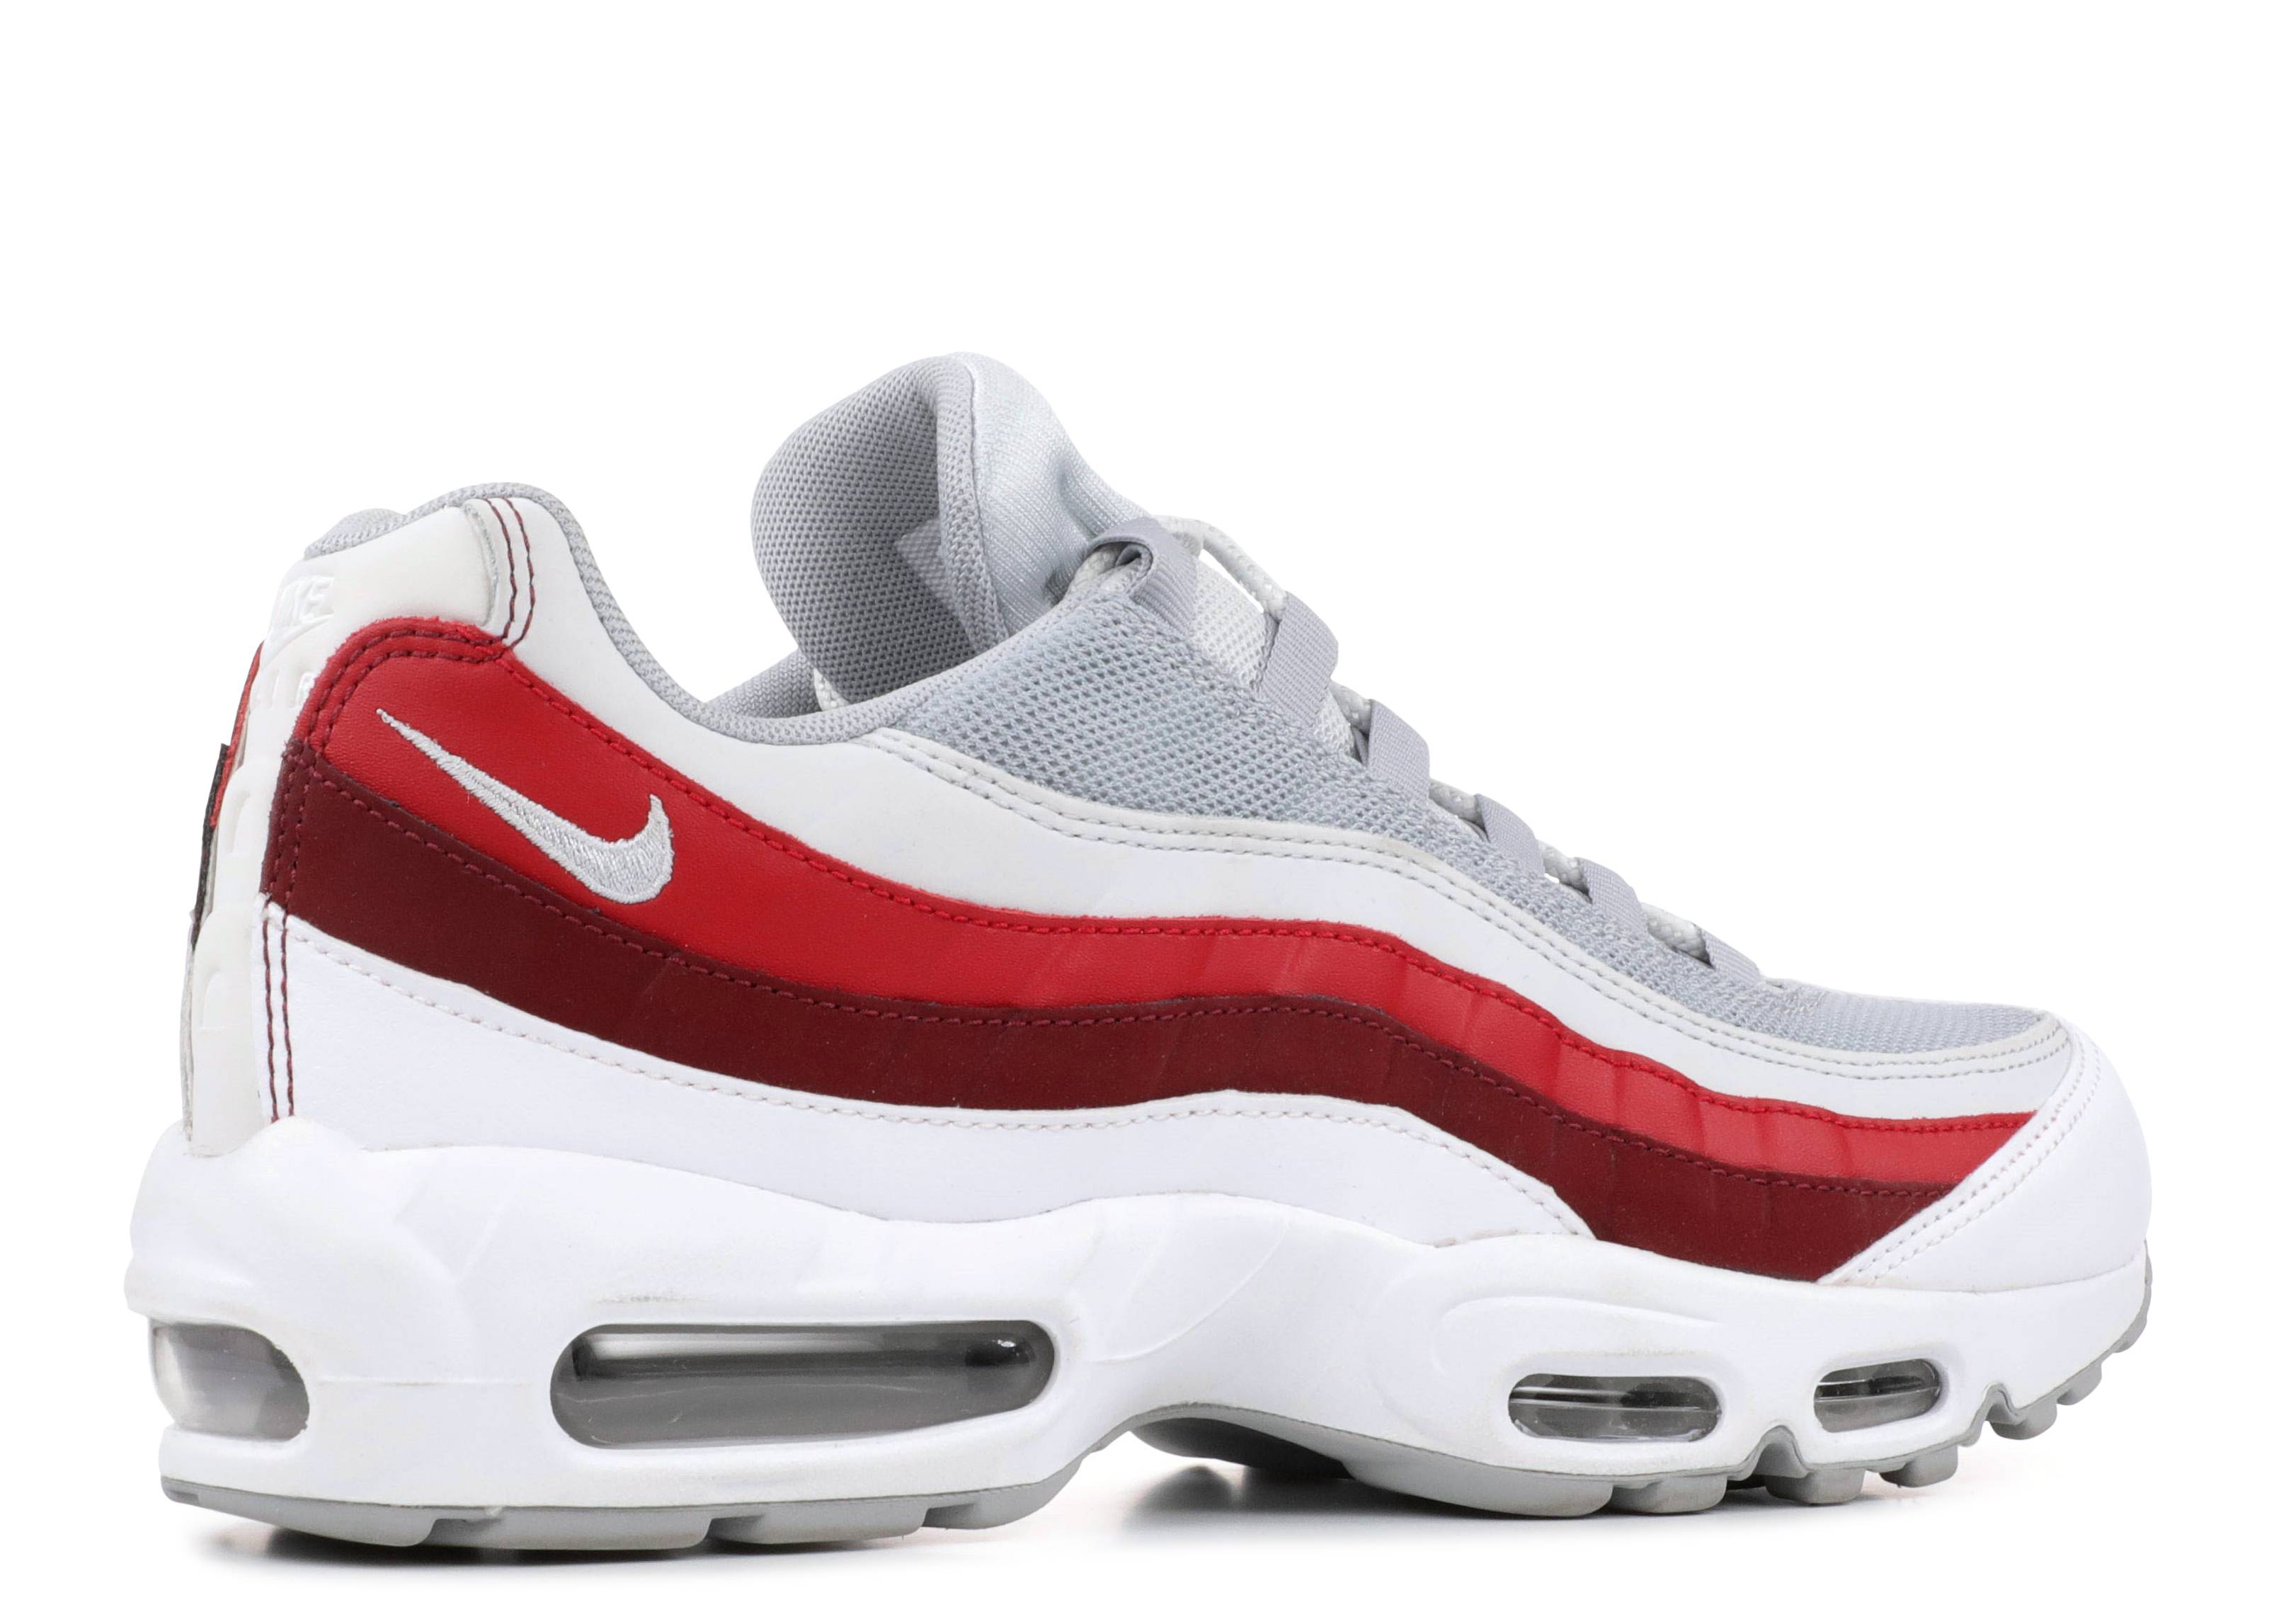 promo code fb1fe 3fee5 Nike Air Max 95 Essential - Nike - 749766 103 - white wolf grey-pure  platinum   Flight Club